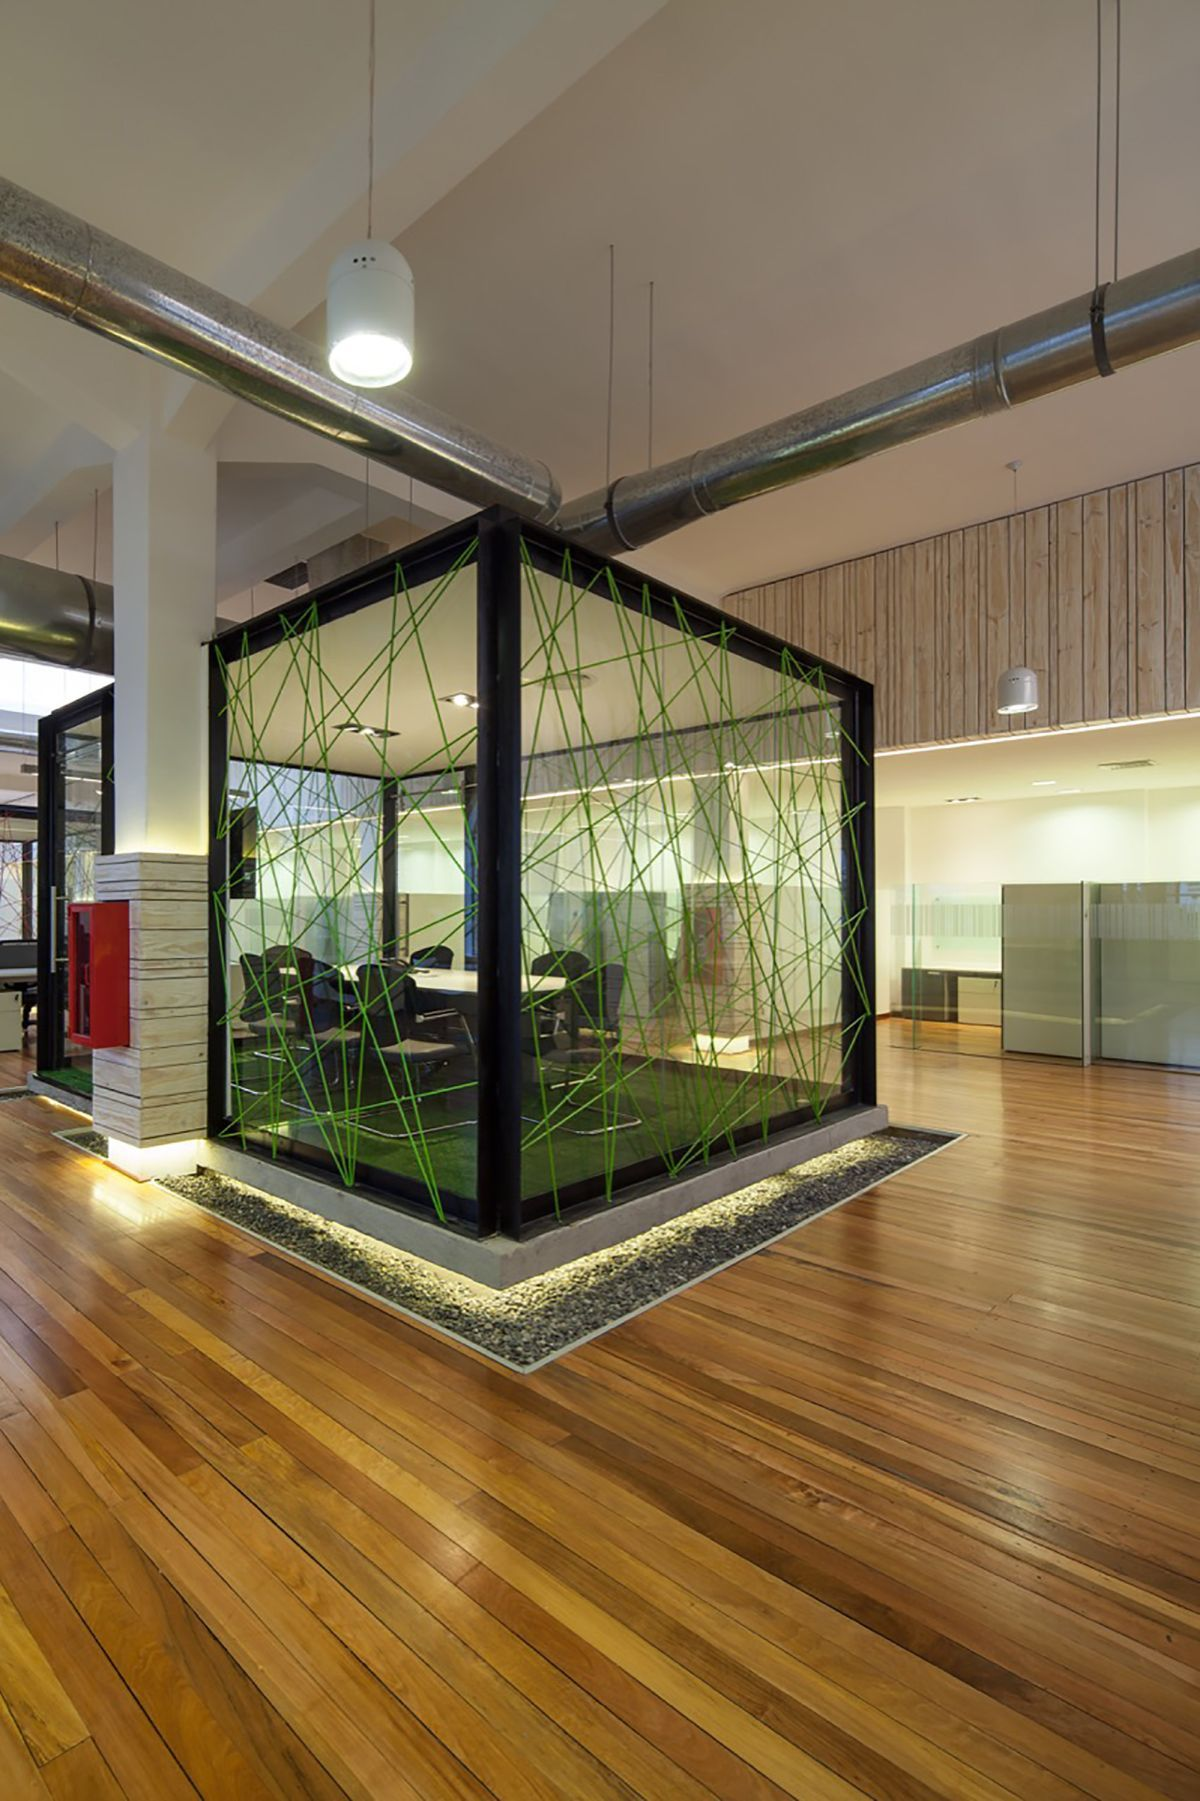 Telecommunication Room Design: Inspiring Office Meeting Rooms Reveal Their Playful